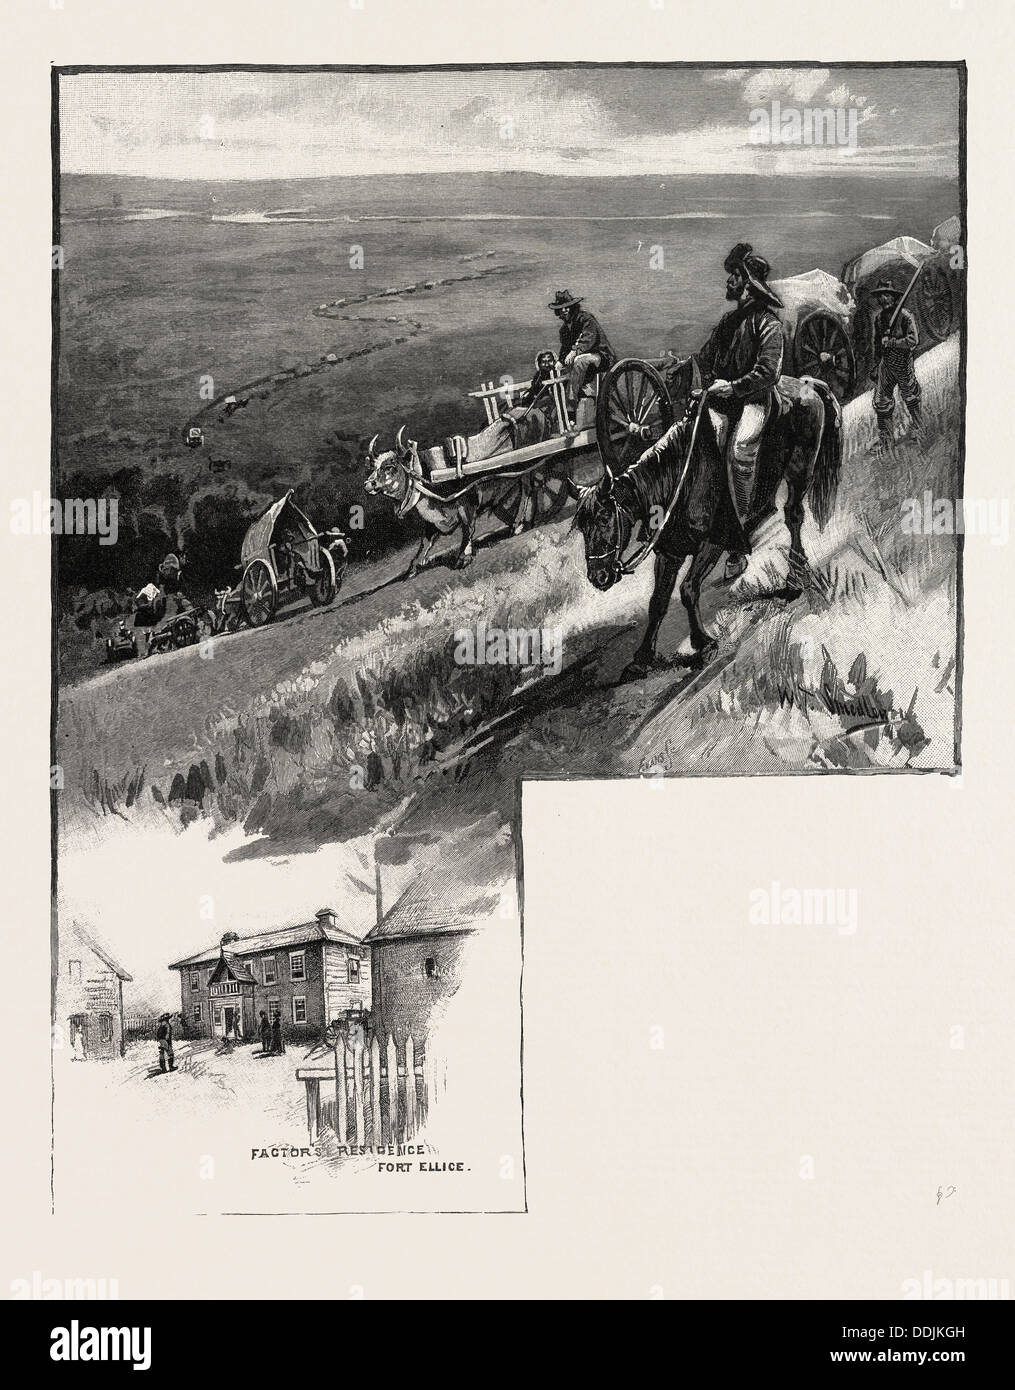 Emigrant train, Assineboine valley, CANADA, NINETEENTH CENTURY ENGRAVING - Stock Image